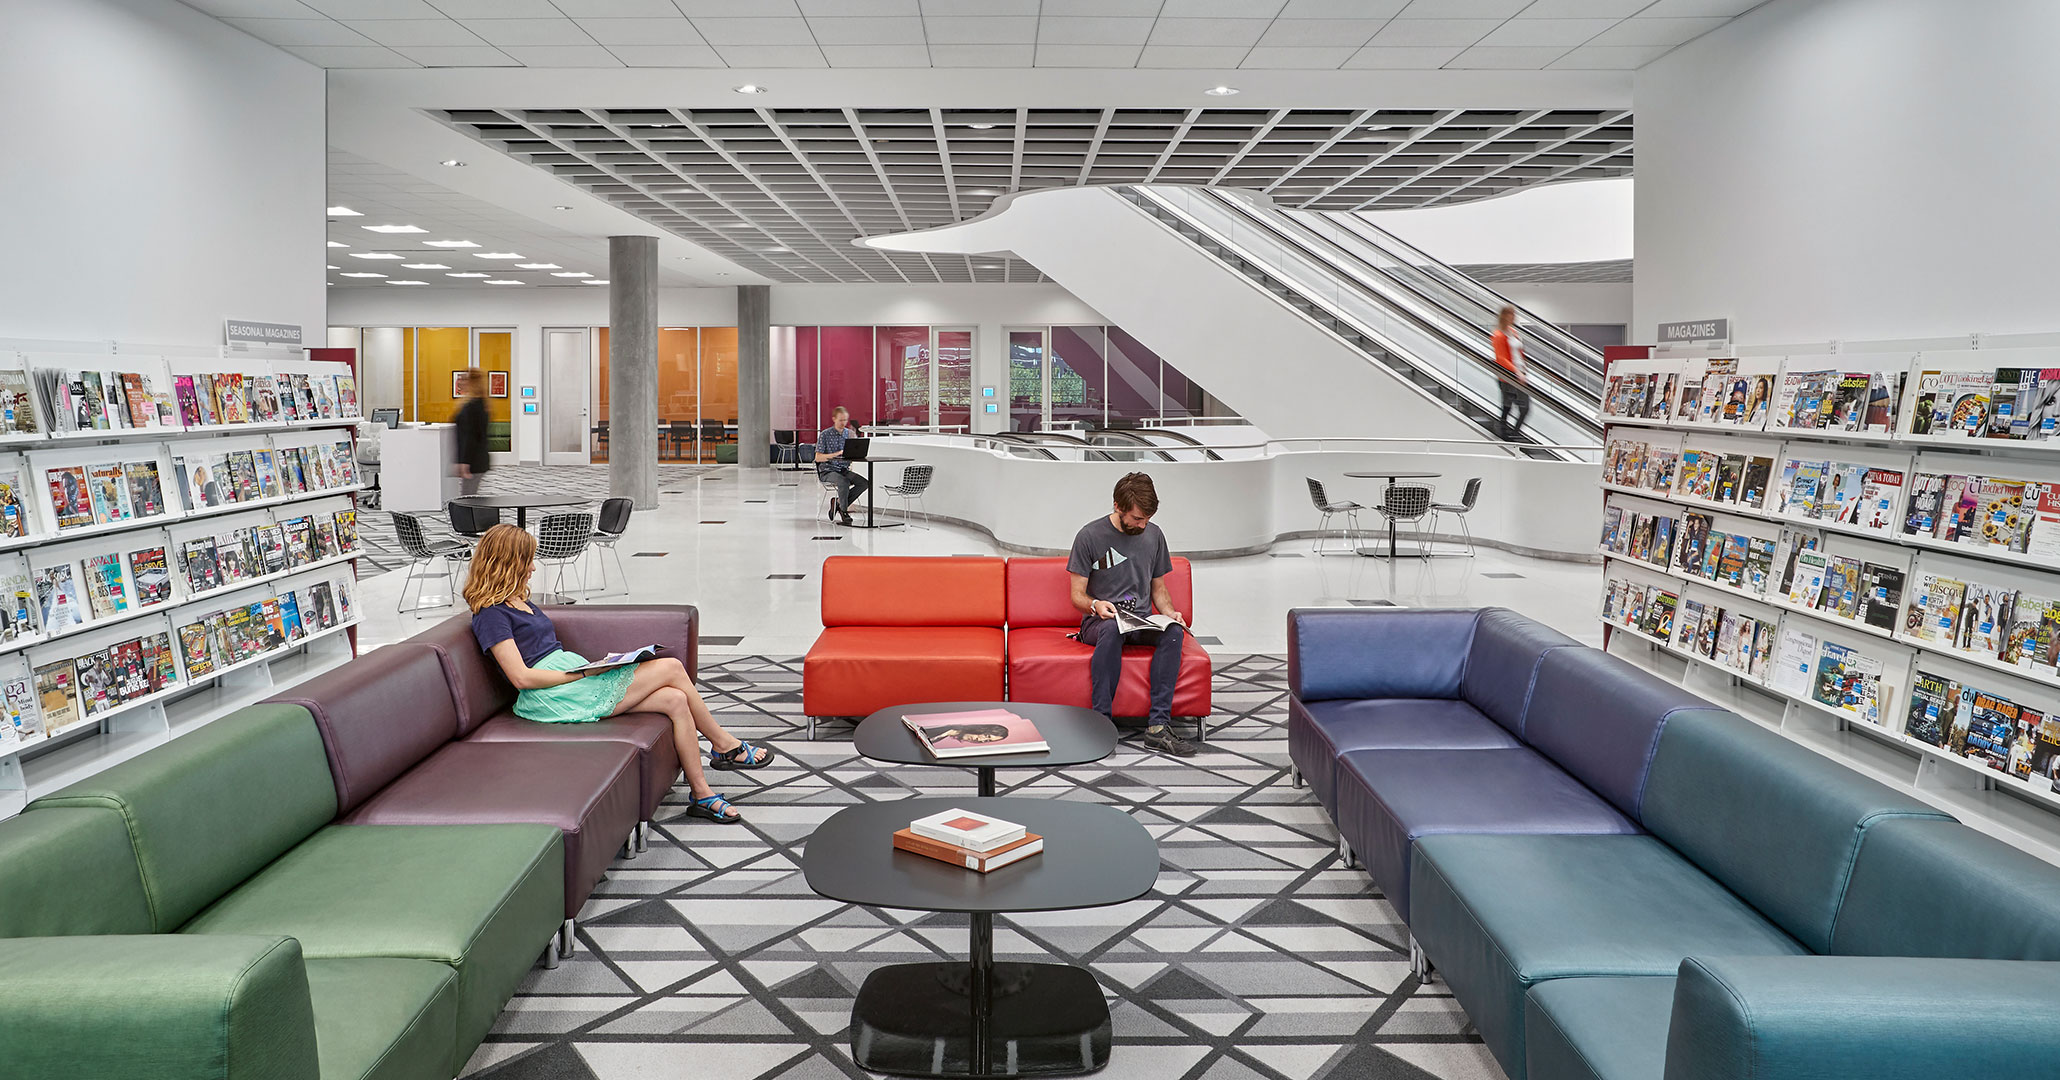 Richland County Library hired Boudreaux architects to completely redesign the interiors of the Main location.